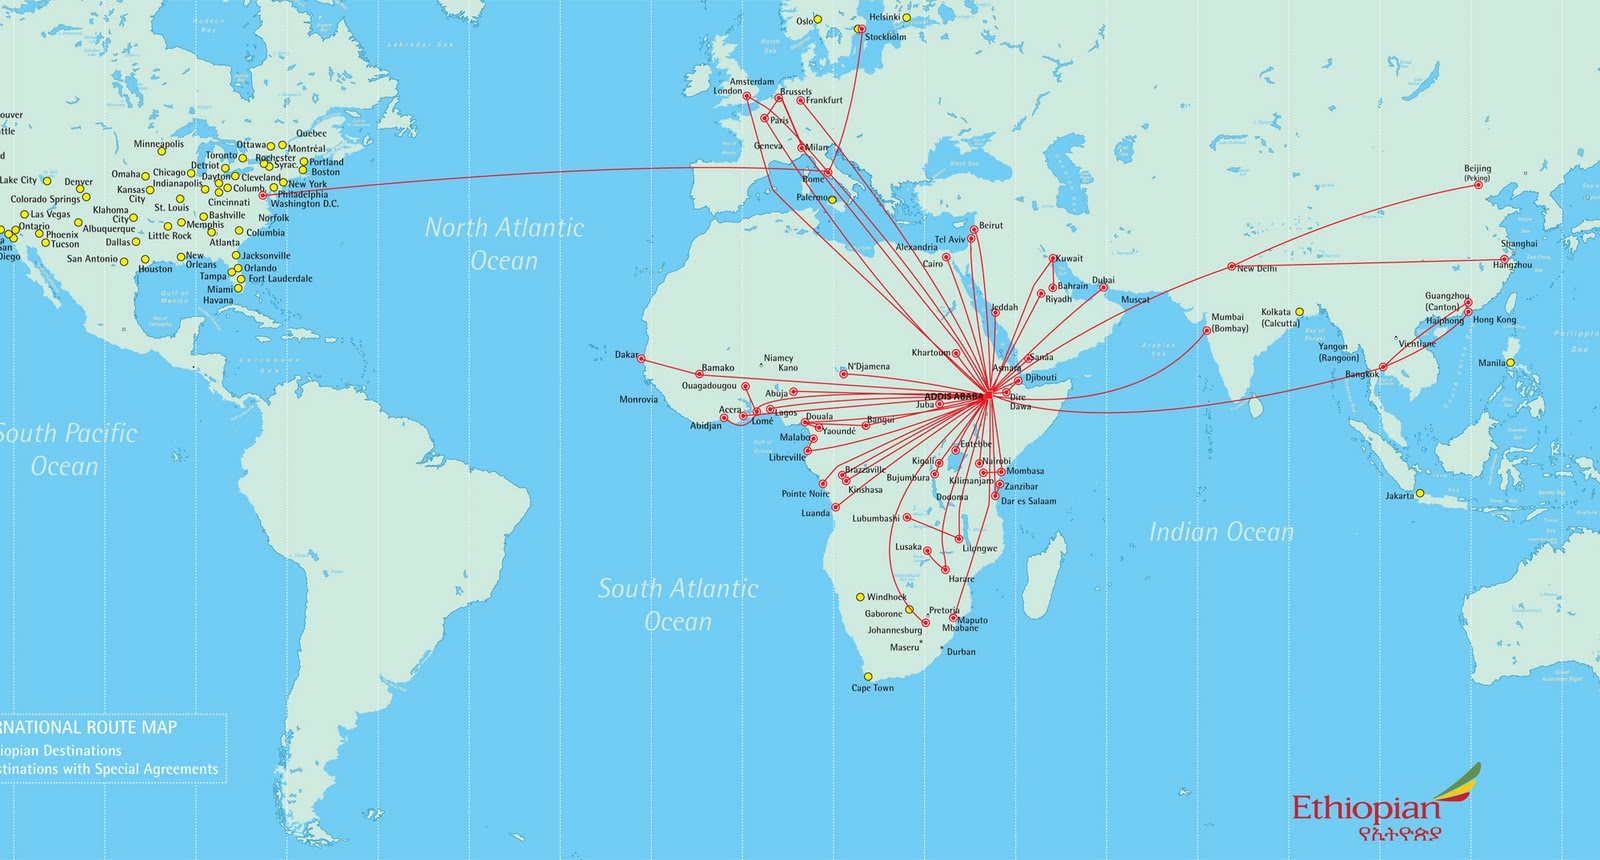 International route Map of Ethiopian Airlines